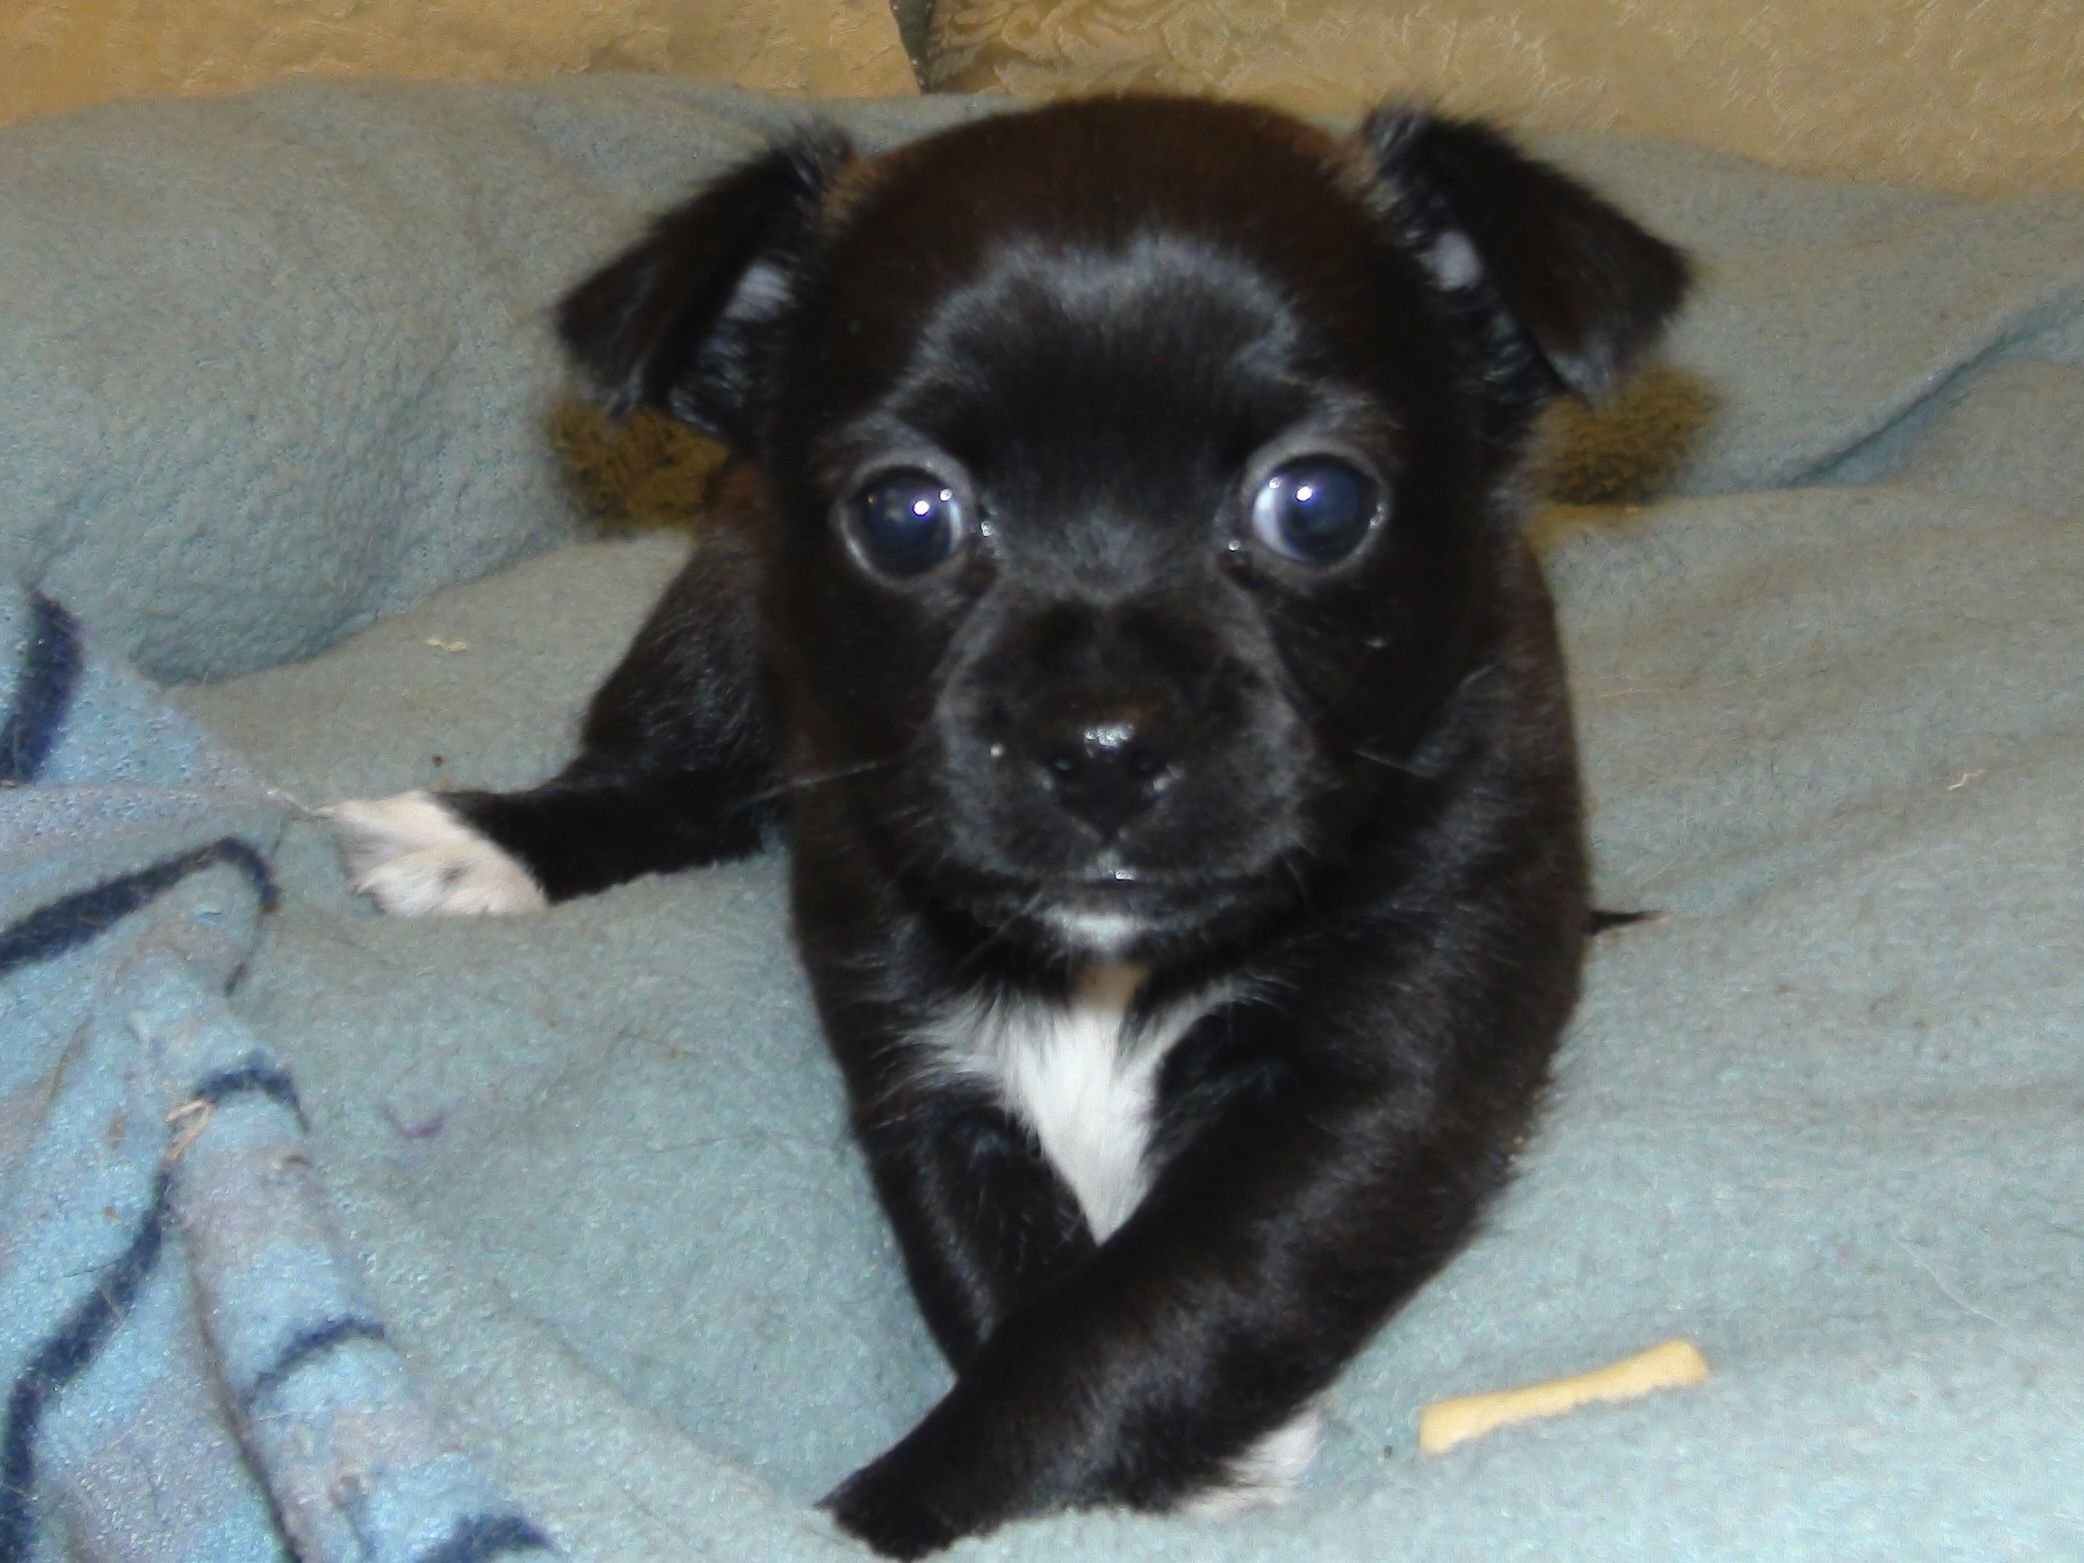 Chihuahua Puppies For Sale Born October 19 26 2015 View Videos Photos Fredericksburg Va Chihuahua Chihuahua Puppies Chihuahua Puppies For Sale